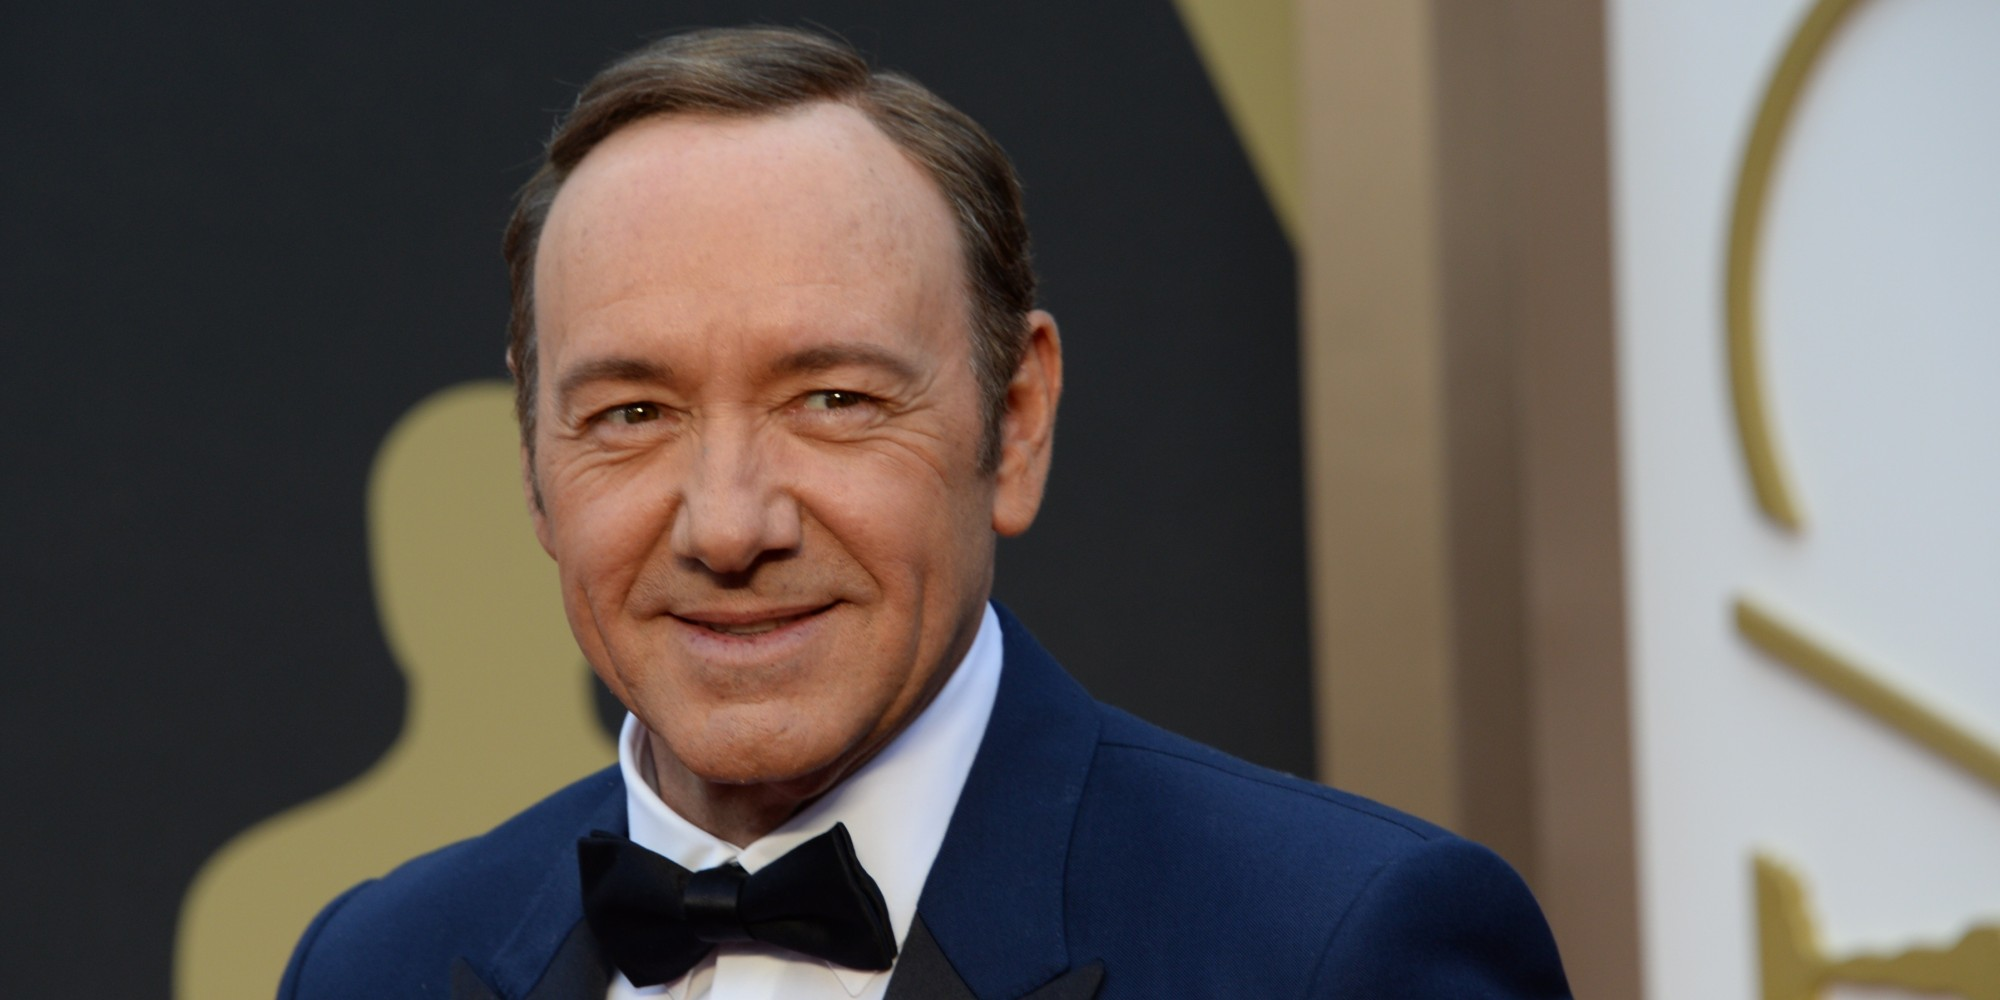 kevin spacey maskkevin spacey call of duty, kevin spacey movies, kevin spacey films, kevin spacey height, kevin spacey wife, kevin spacey mask, kevin spacey house of cards, kevin spacey фильмография, kevin spacey seven, kevin spacey impressions, kevin spacey gif, kevin spacey trump, kevin spacey 2017, kevin spacey beyond the sea, kevin spacey 2016, kevin spacey teaches acting, kevin spacey online course, kevin spacey net worth, kevin spacey theatre, kevin spacey meme